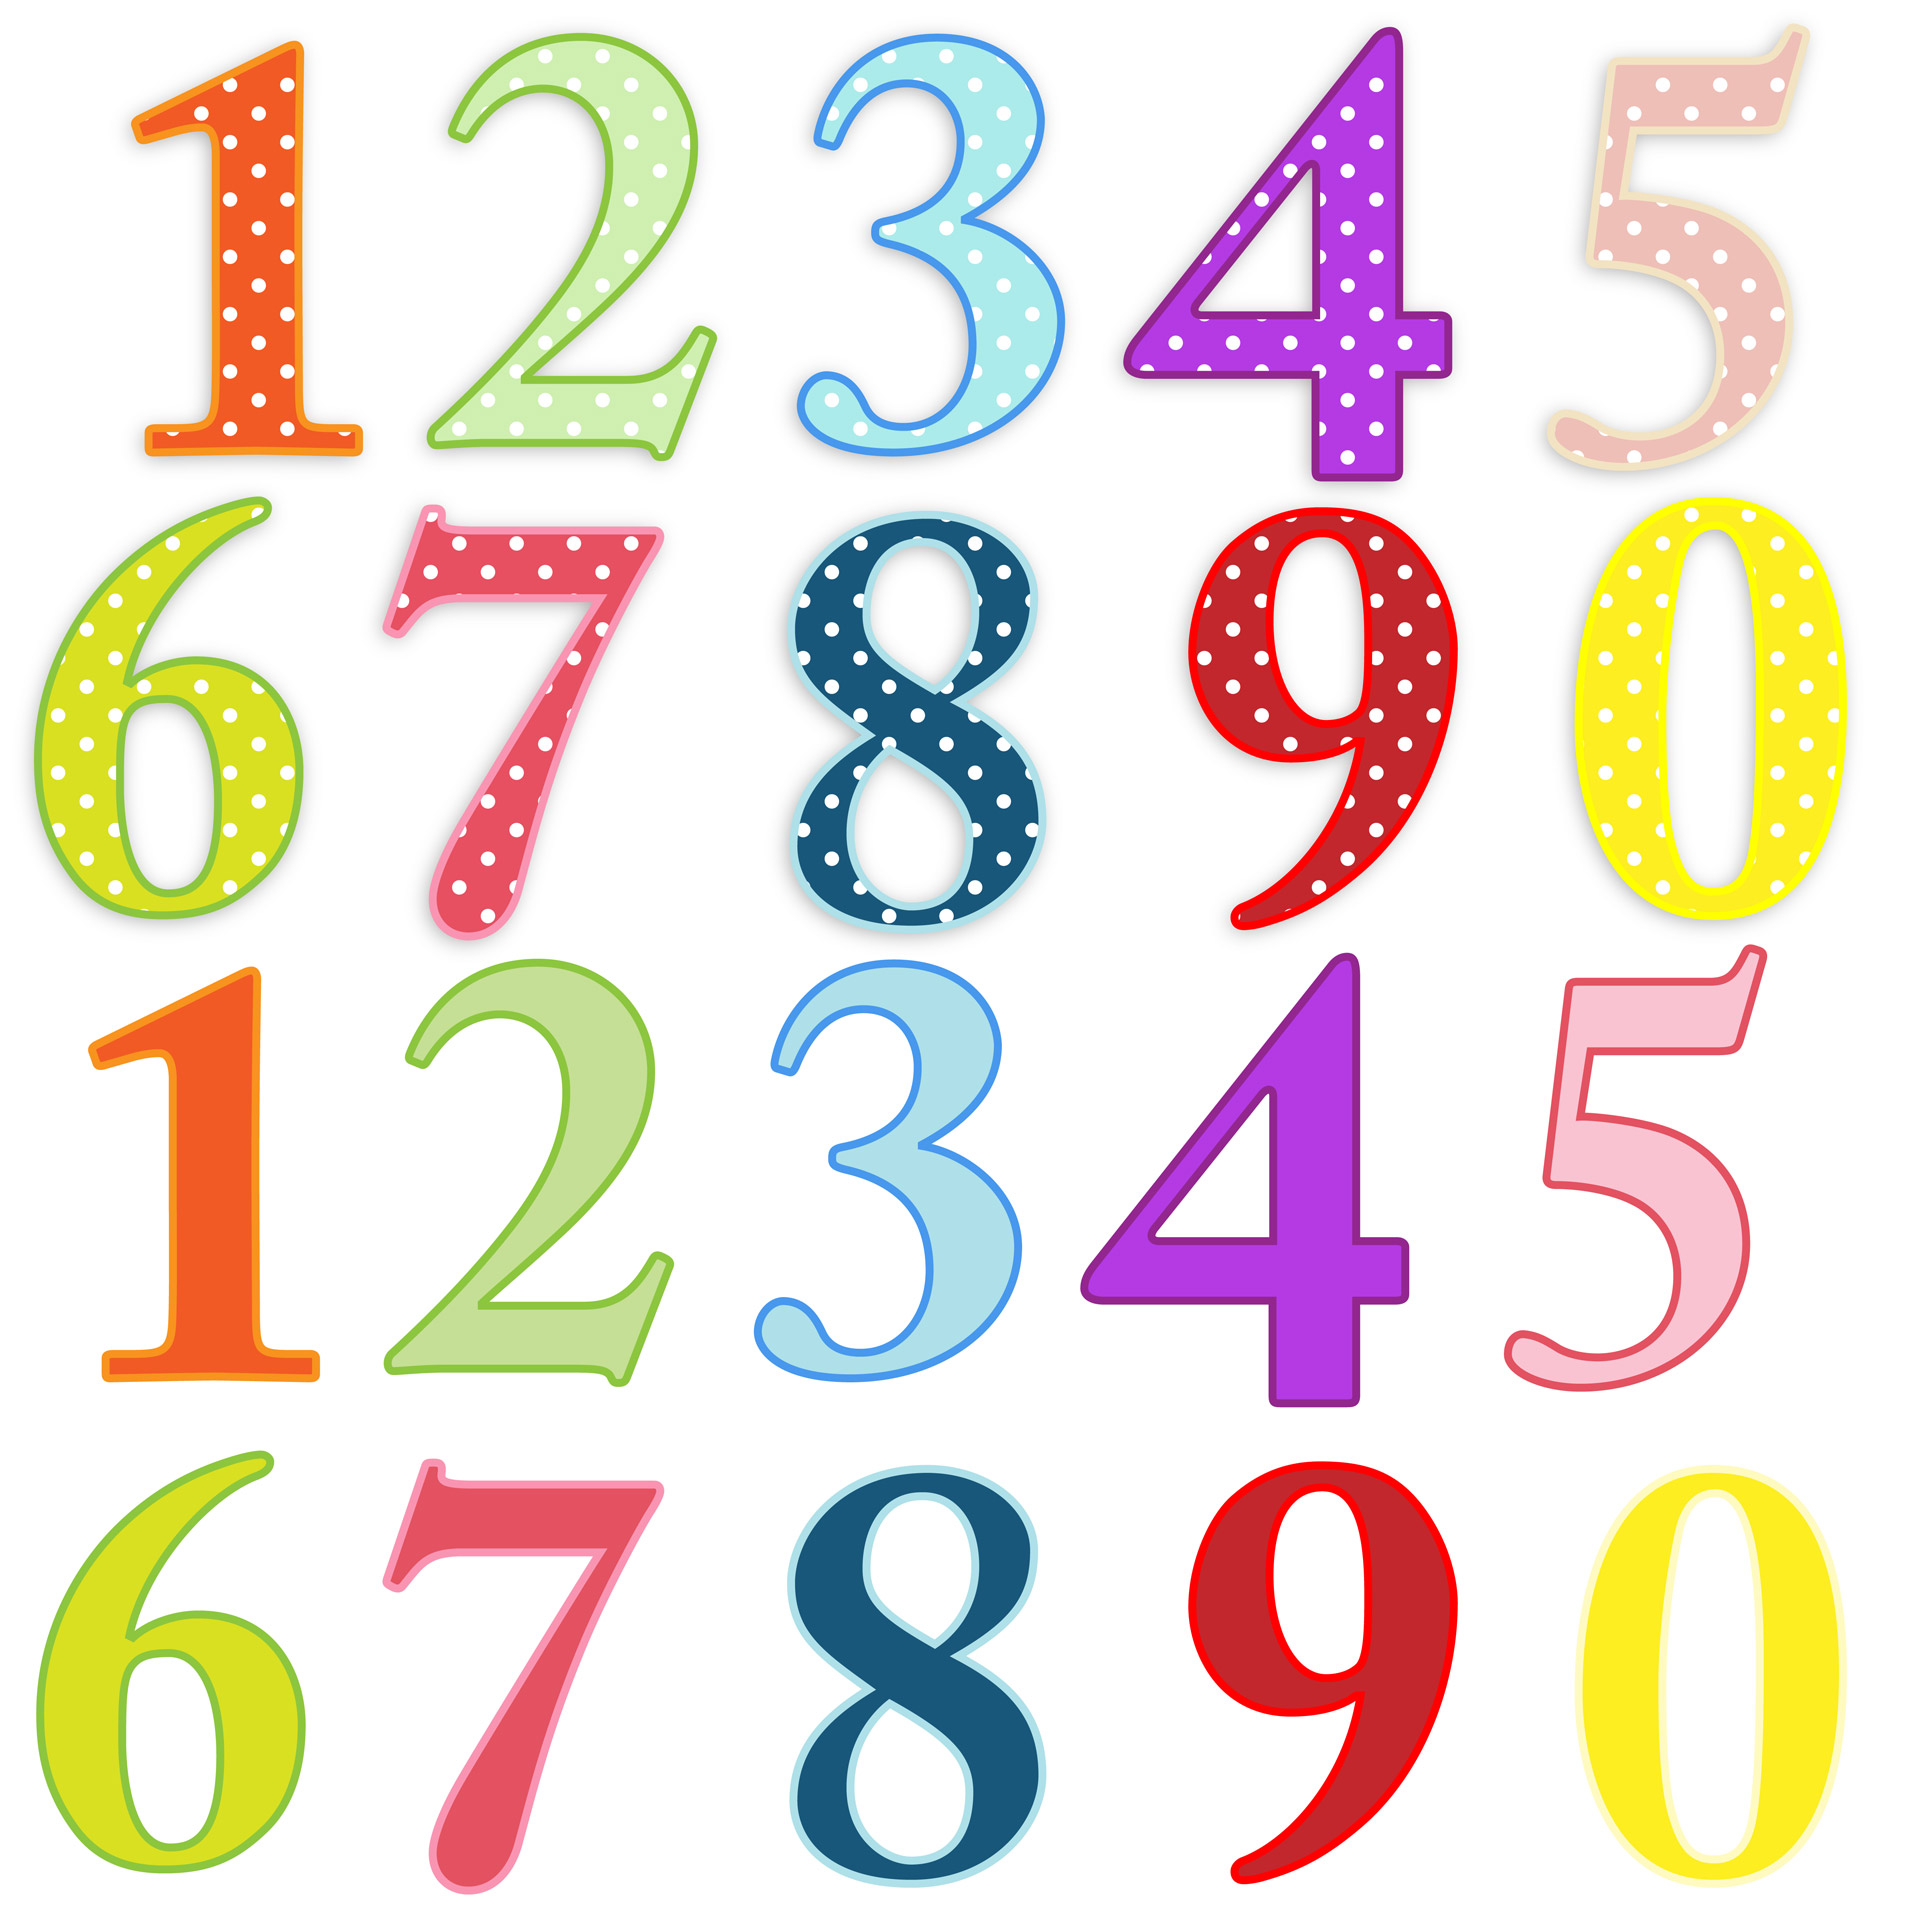 1912x1920 Numbers Colorful Clip Art Free Stock Photo